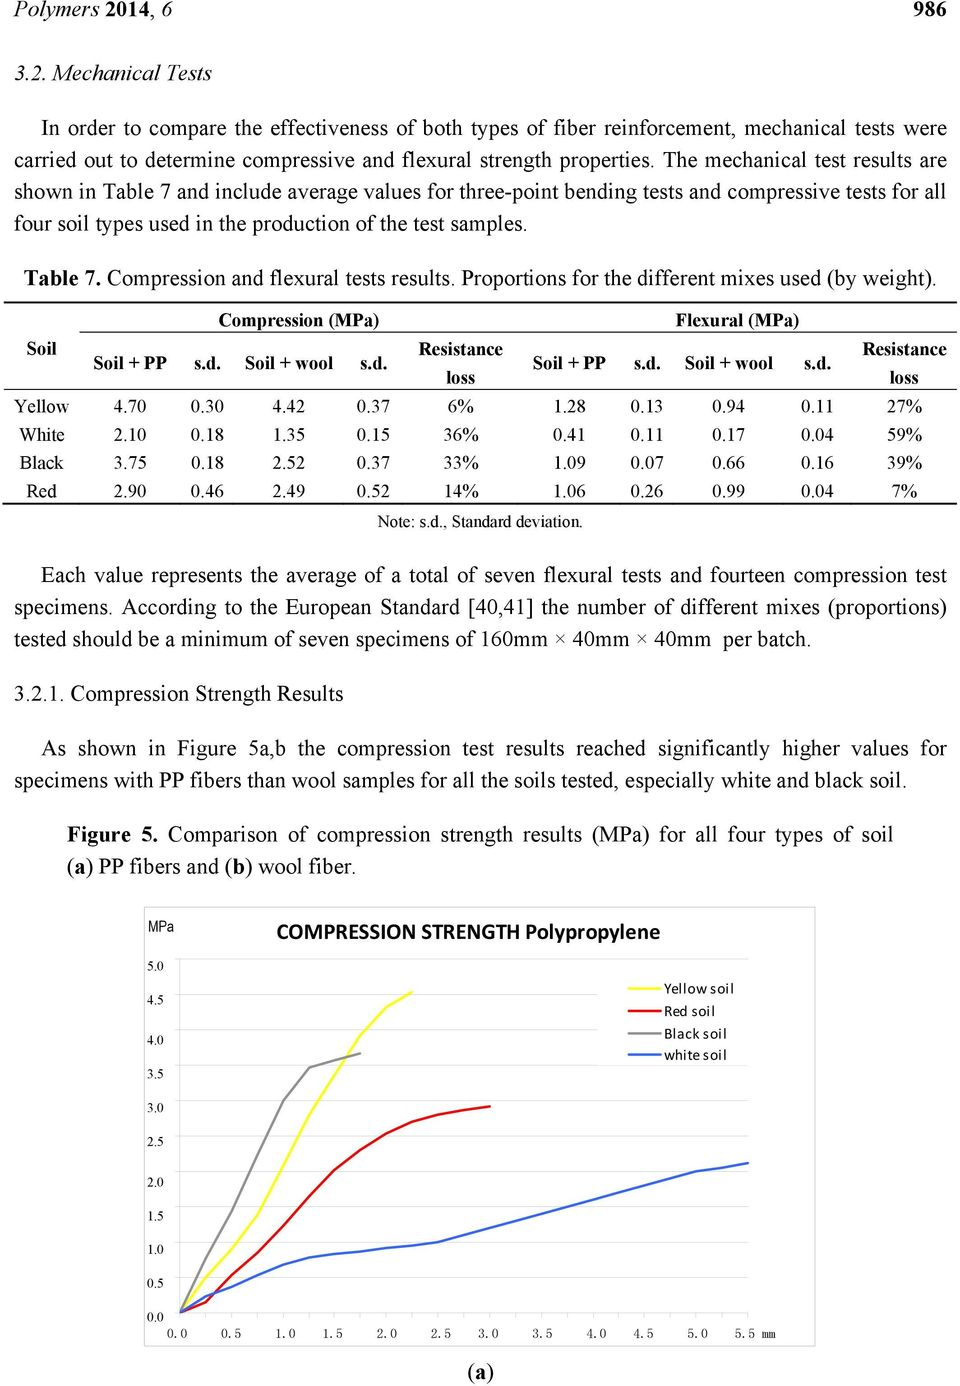 Table 7. Compression and flexural tests results. Proportions for the different mixes used (by weight). Soil Compression (MPa) Soil + PP s.d. Soil + wool s.d. Resistance loss Flexural (MPa) Soil + PP s.